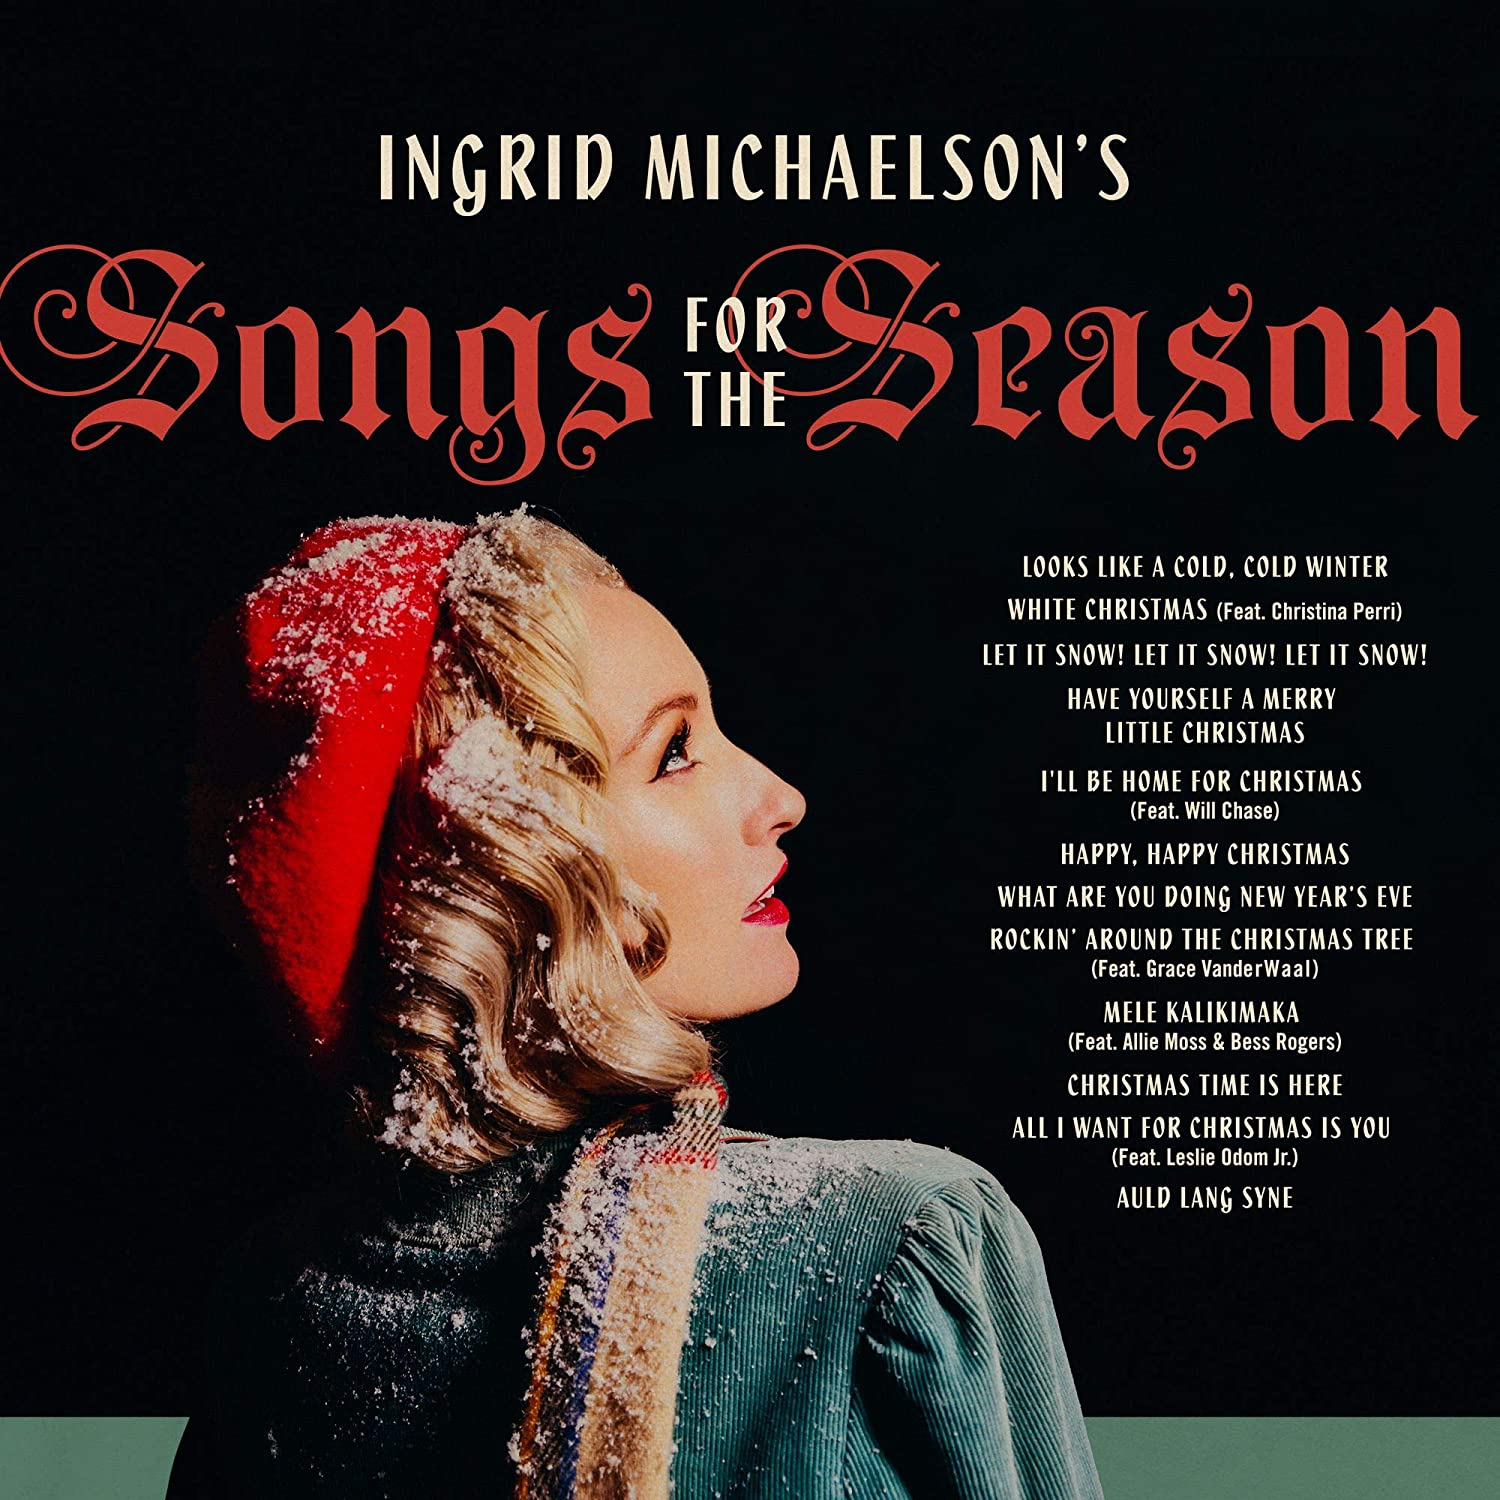 All I Want For Christmas Is You Original.Ingrid Michaelson S Songs For The Season